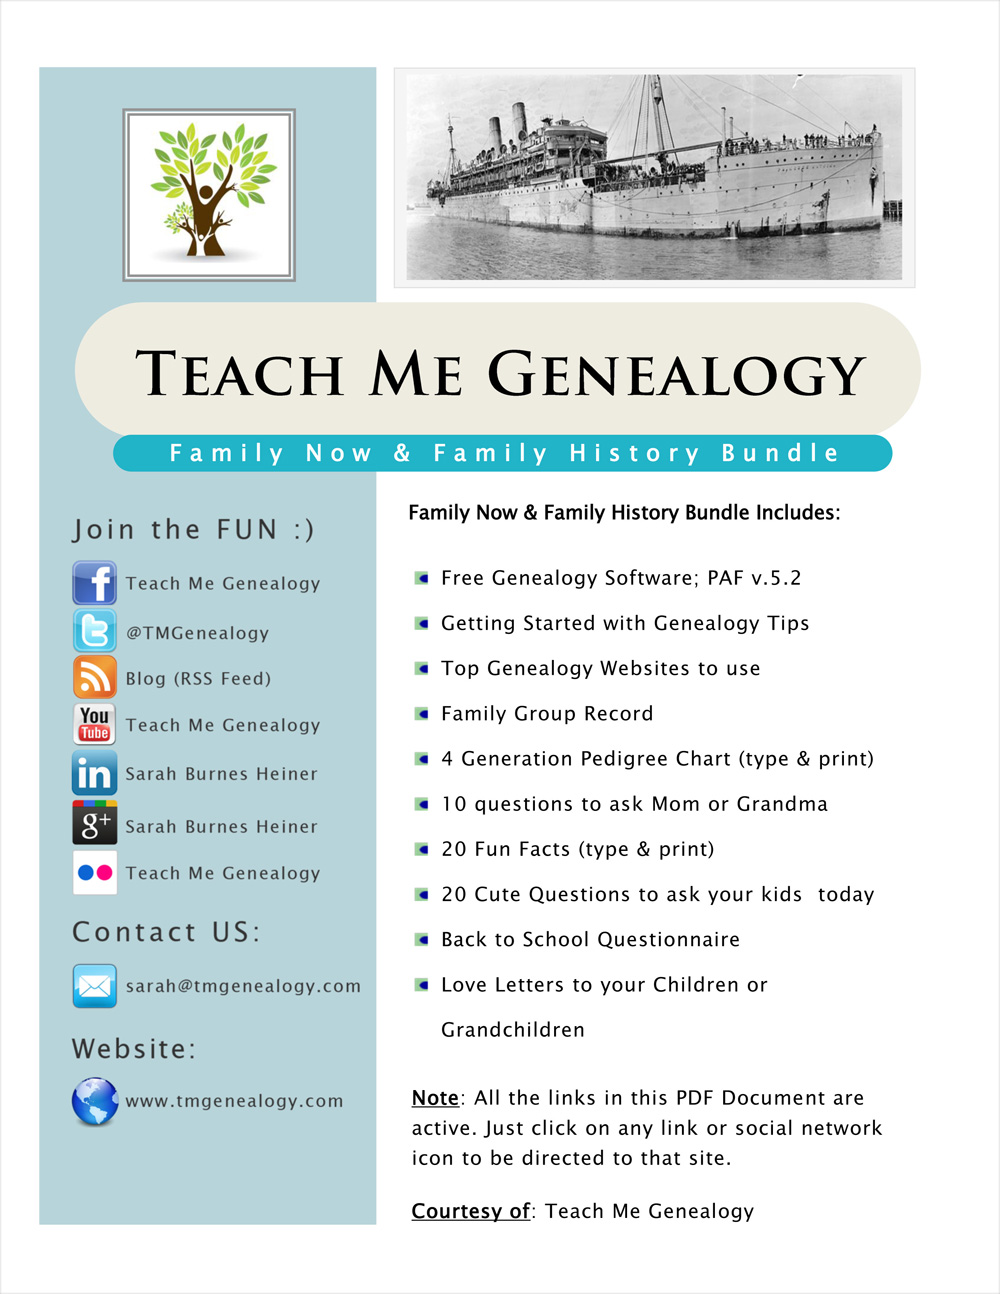 Free Family History Bundle Finally Released Software Pedigree Chart Group Record Getting Started Websites Printables And Much More